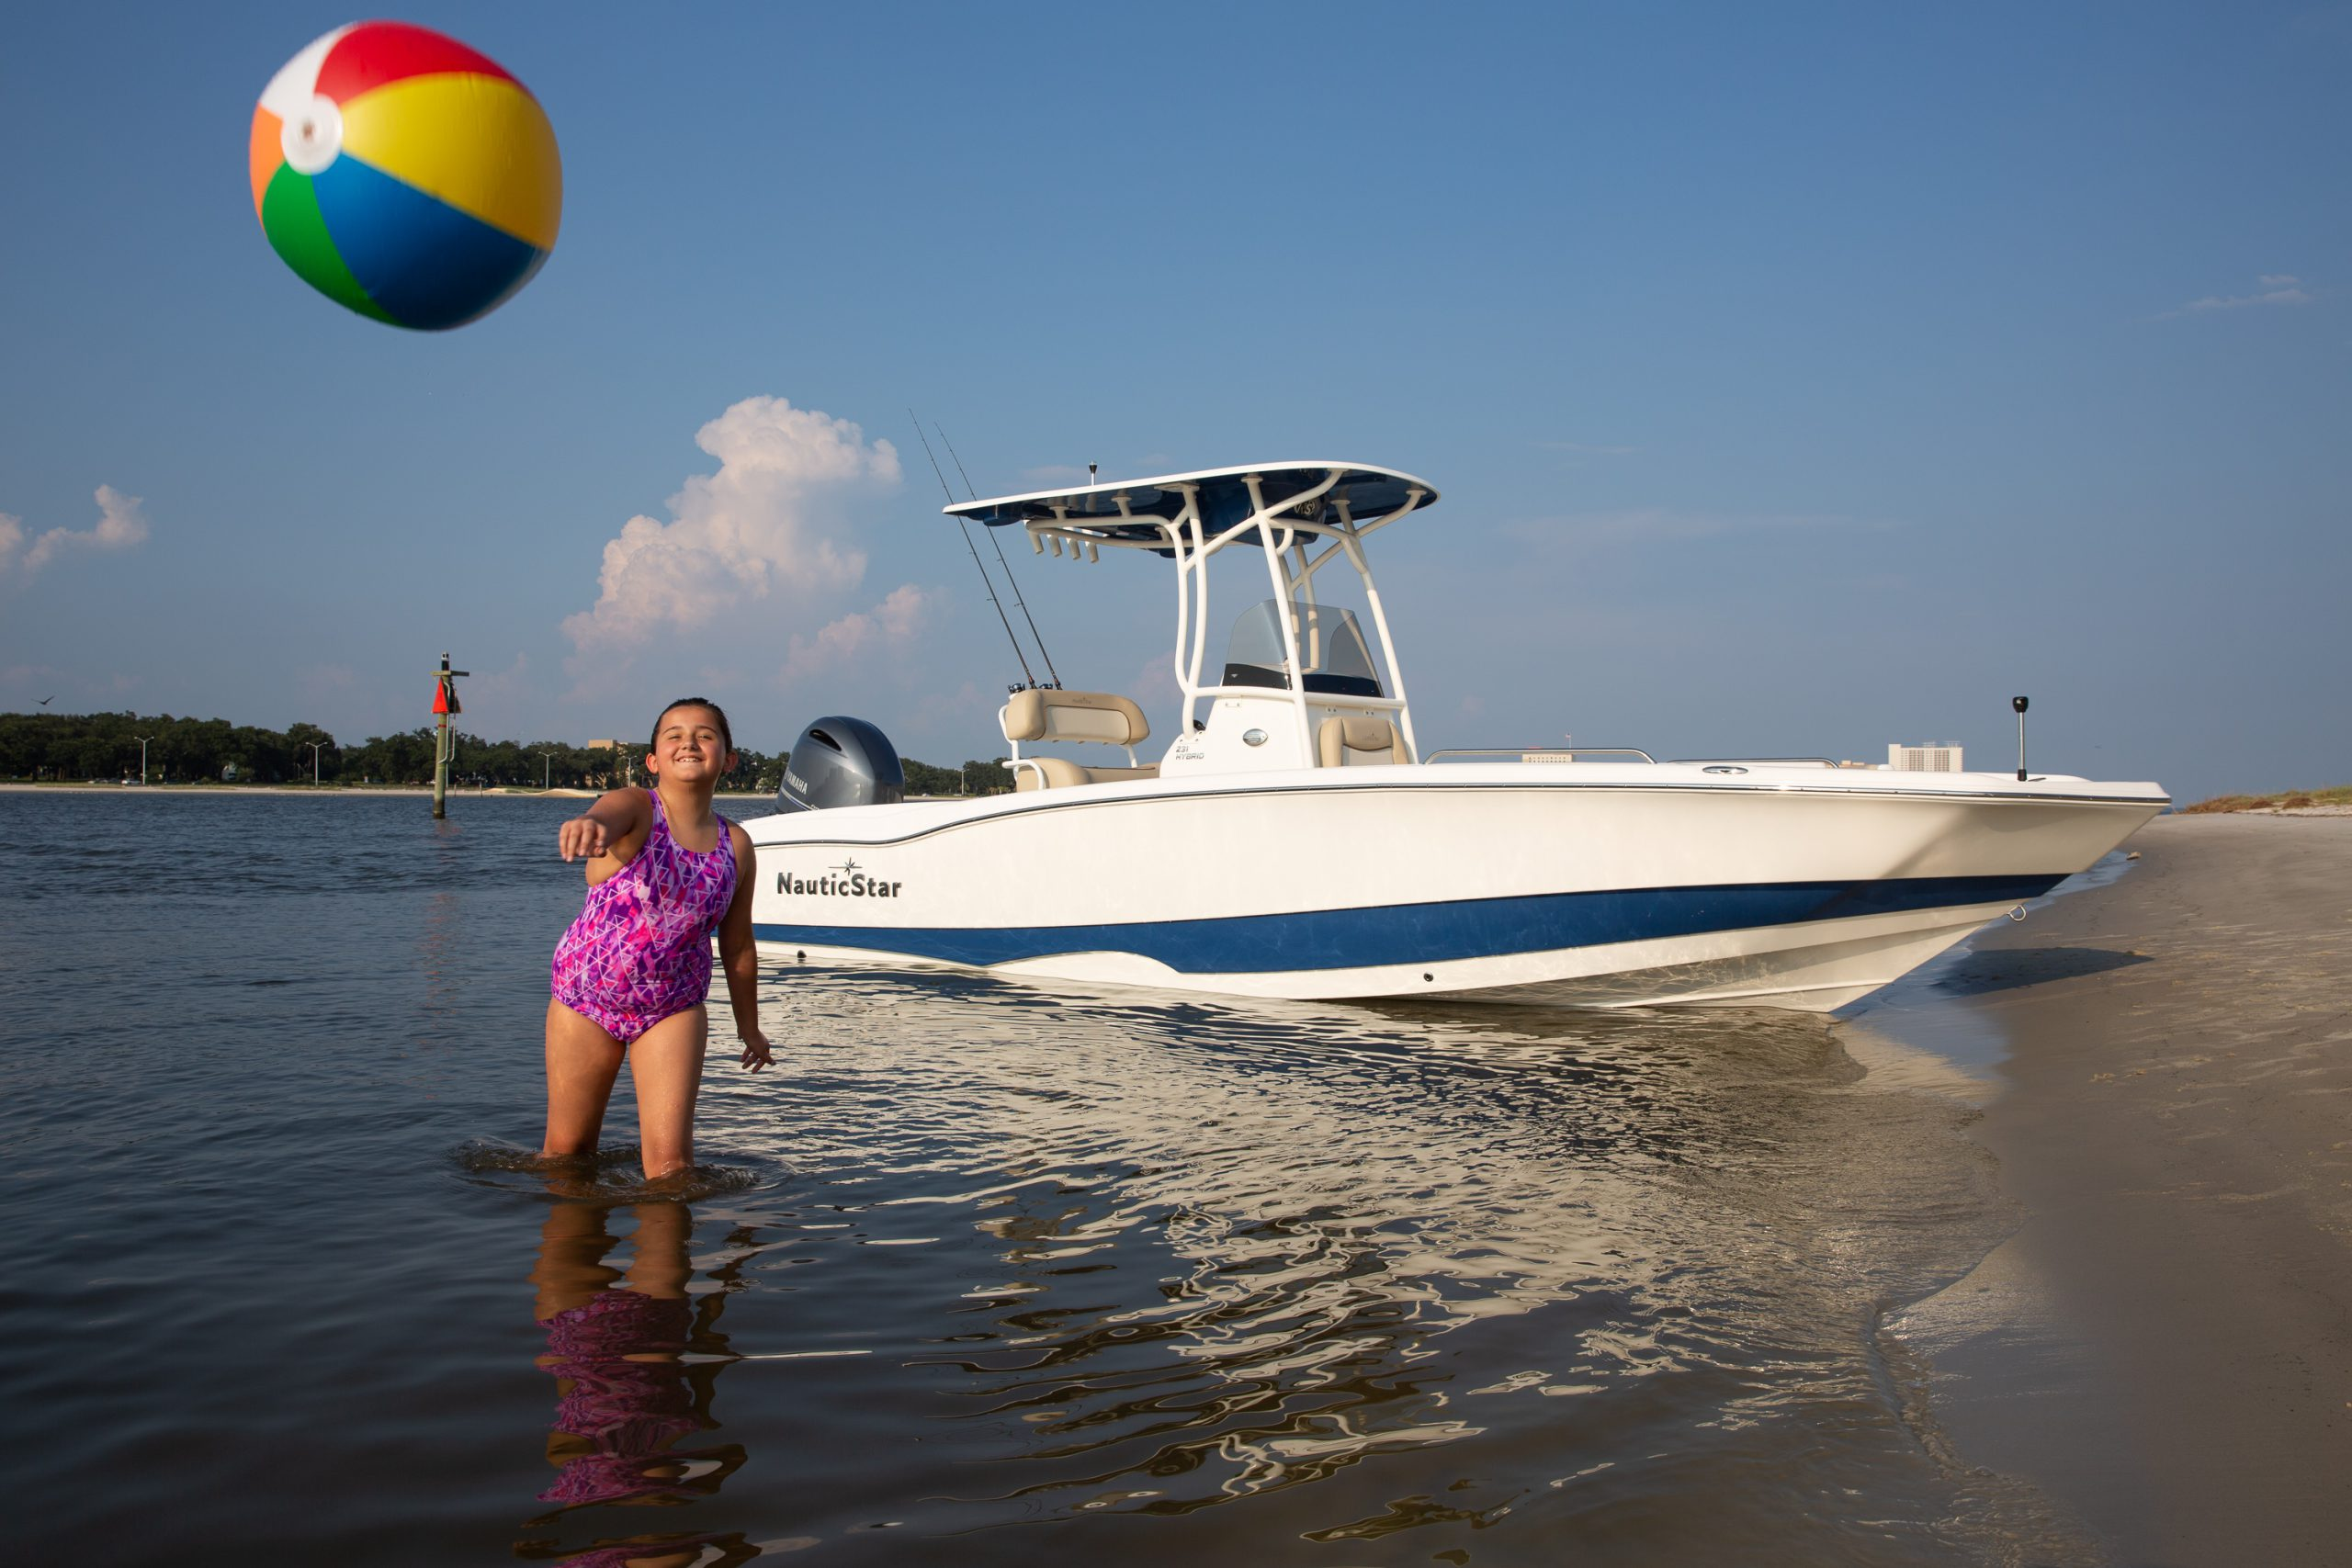 Girl tosses beachball at camera with a NauticStar 231 Hybrid boat beached behind her